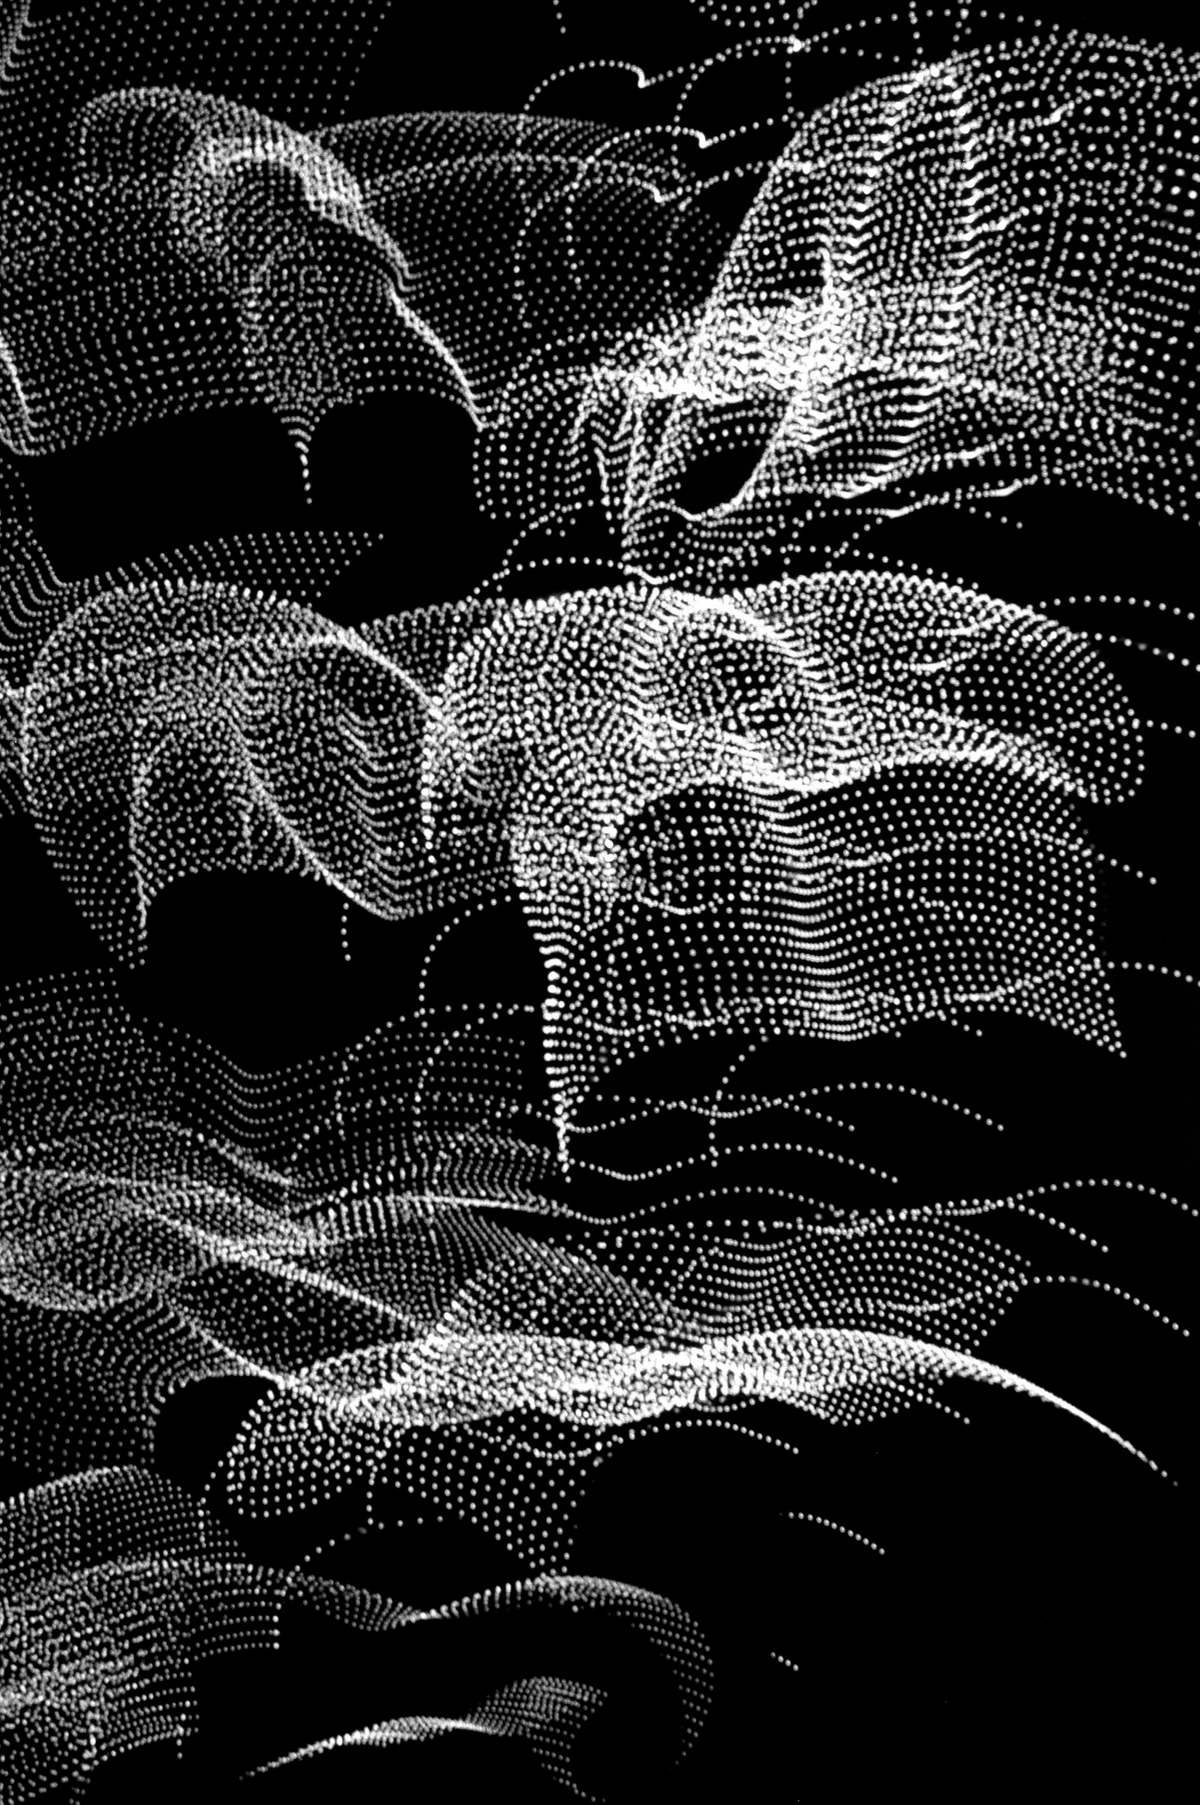 Nights of St. Lorenzo, 2007, Black and White Abstract Photography, Shirine Gill